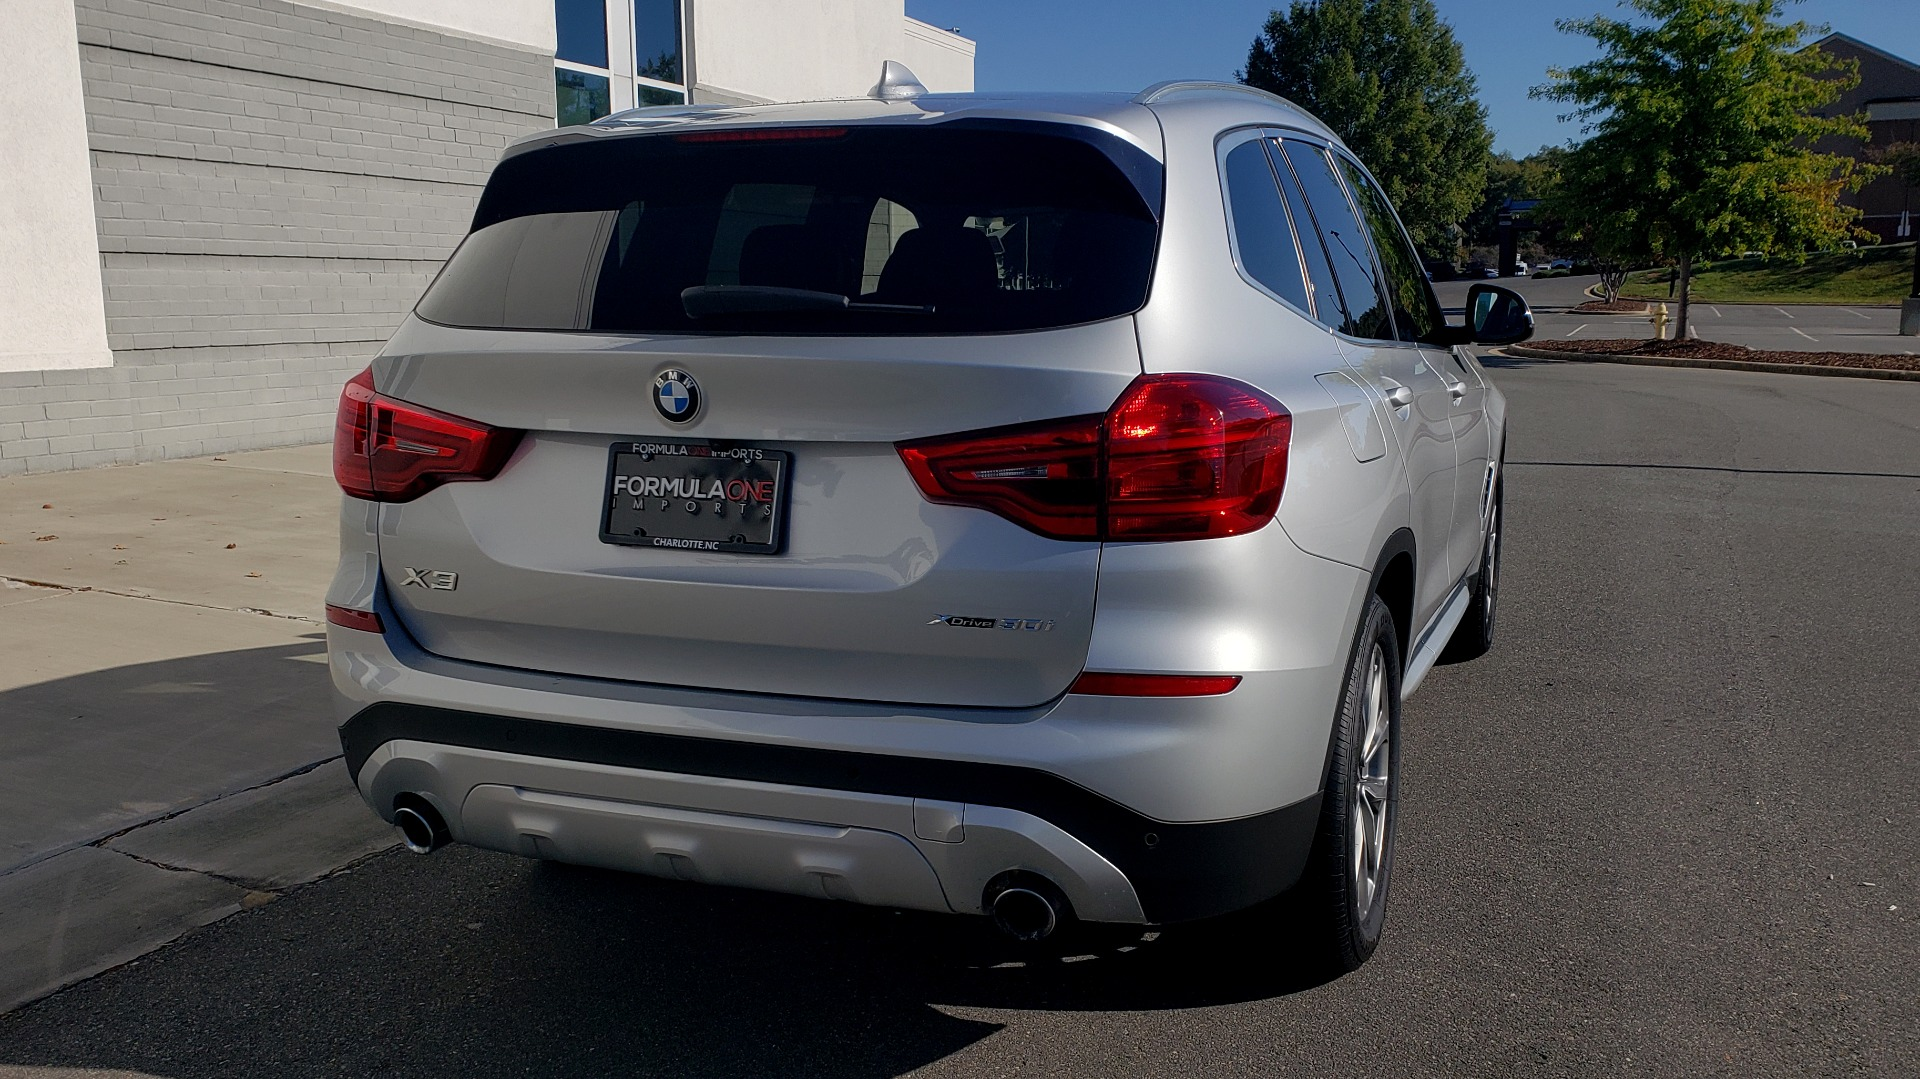 Used 2019 BMW X3 XDRIVE30I / DRVR ASST / PANO-ROOF / HTD STS / REARVIEW for sale $41,995 at Formula Imports in Charlotte NC 28227 7